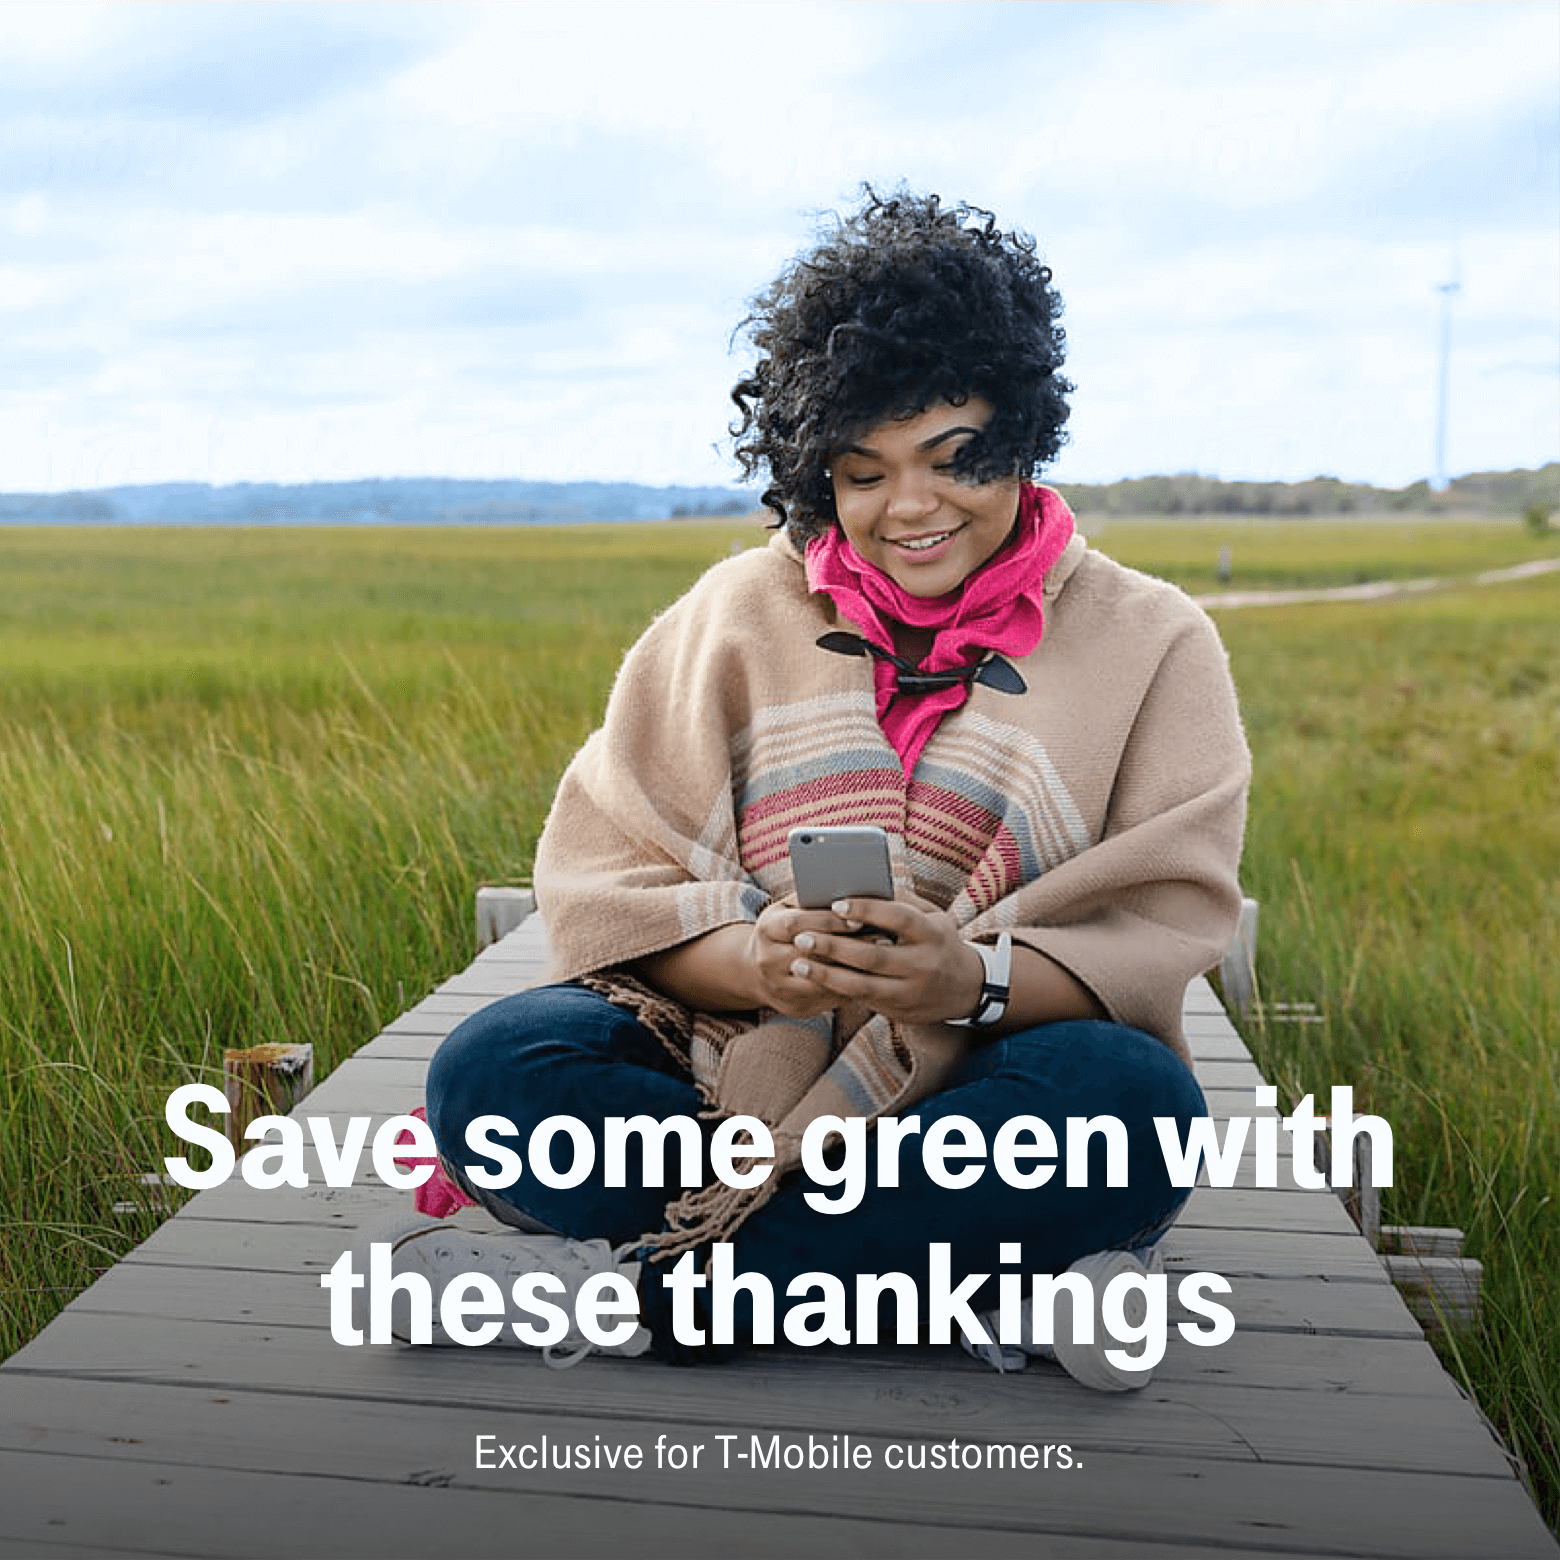 Save some green with these thankings. Exclusive for T-Mobile customers.